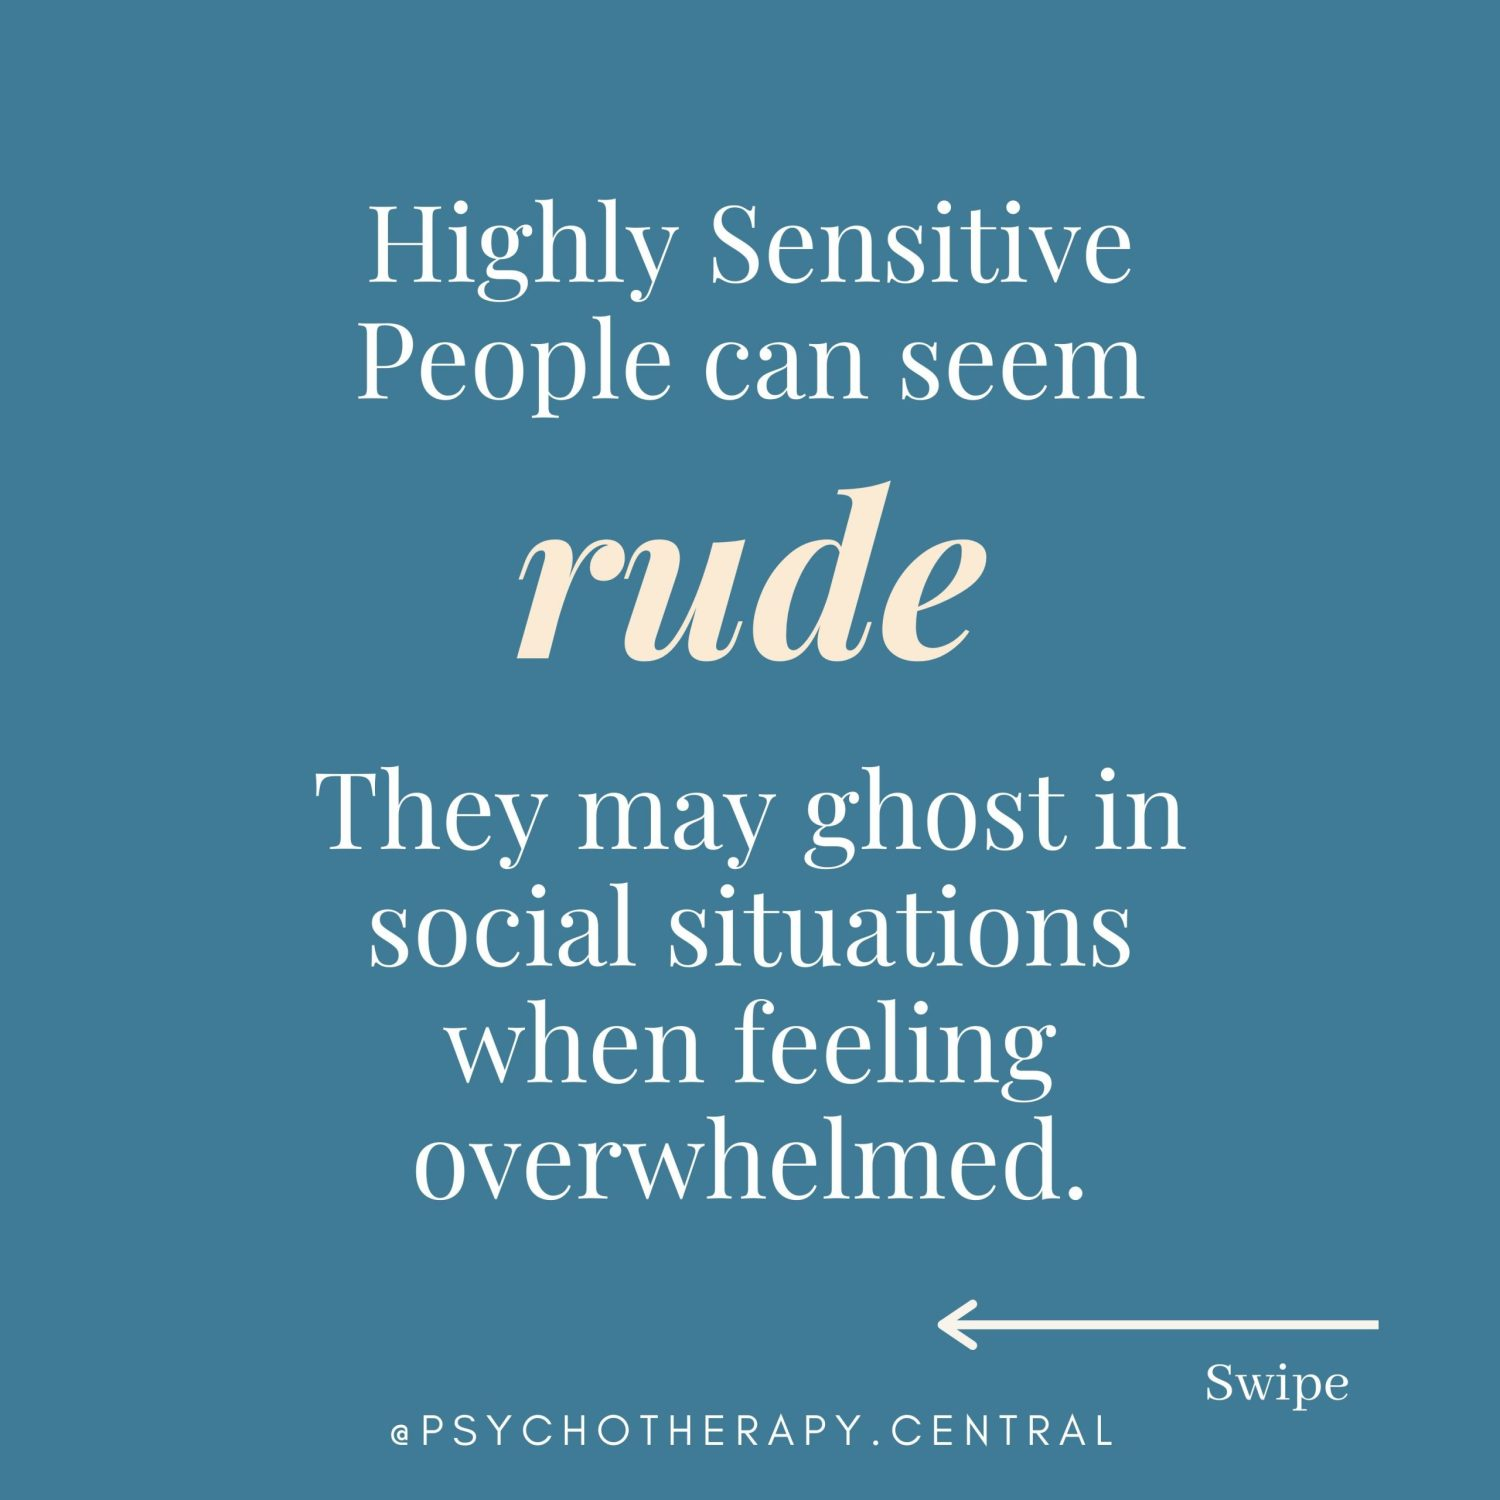 Highly Sensitive people are misunderstood